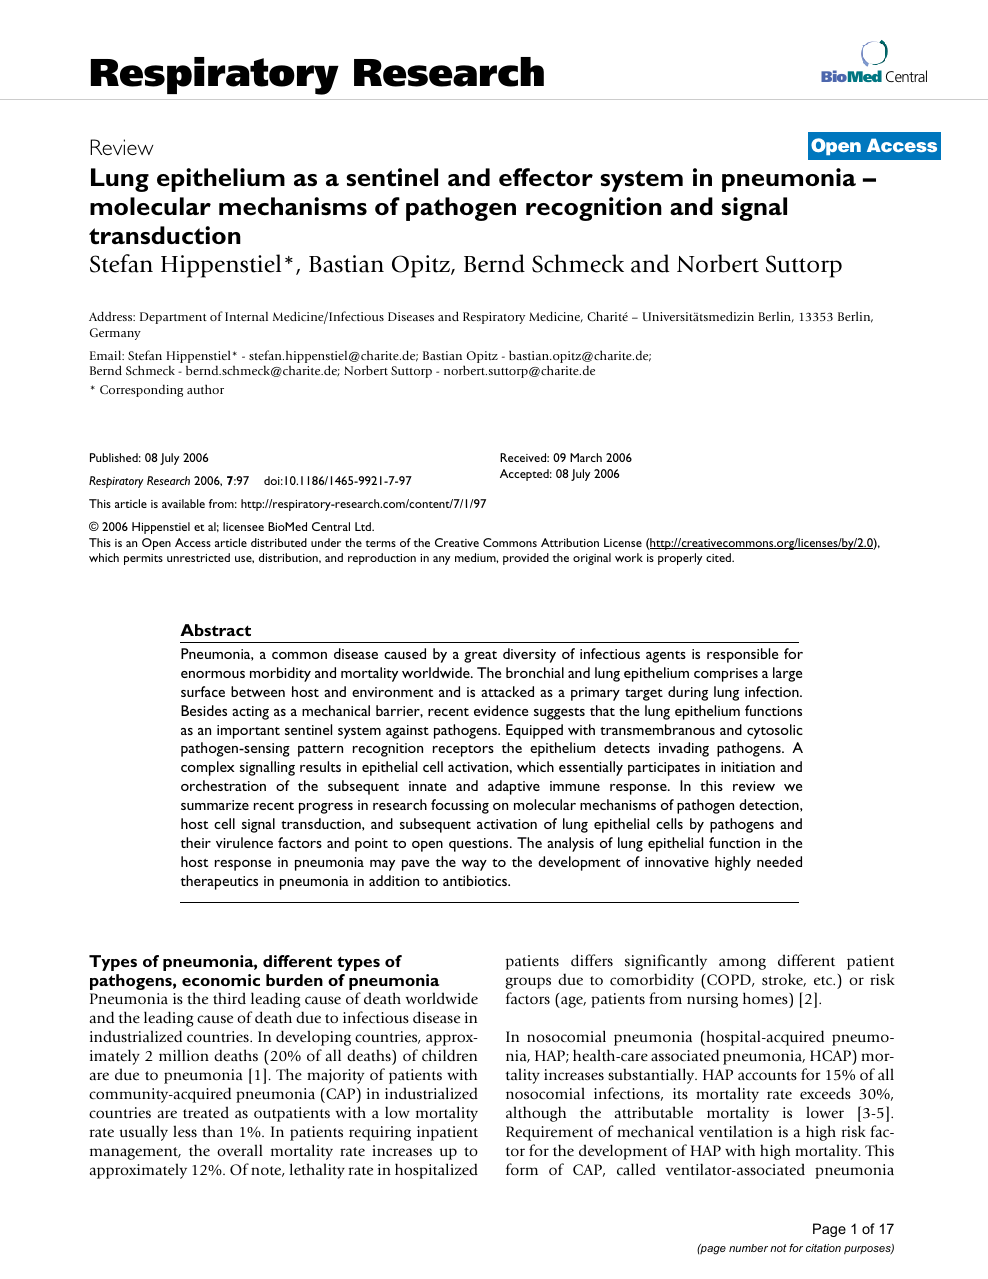 Lung Epithelium As A Sentinel And Effector System In